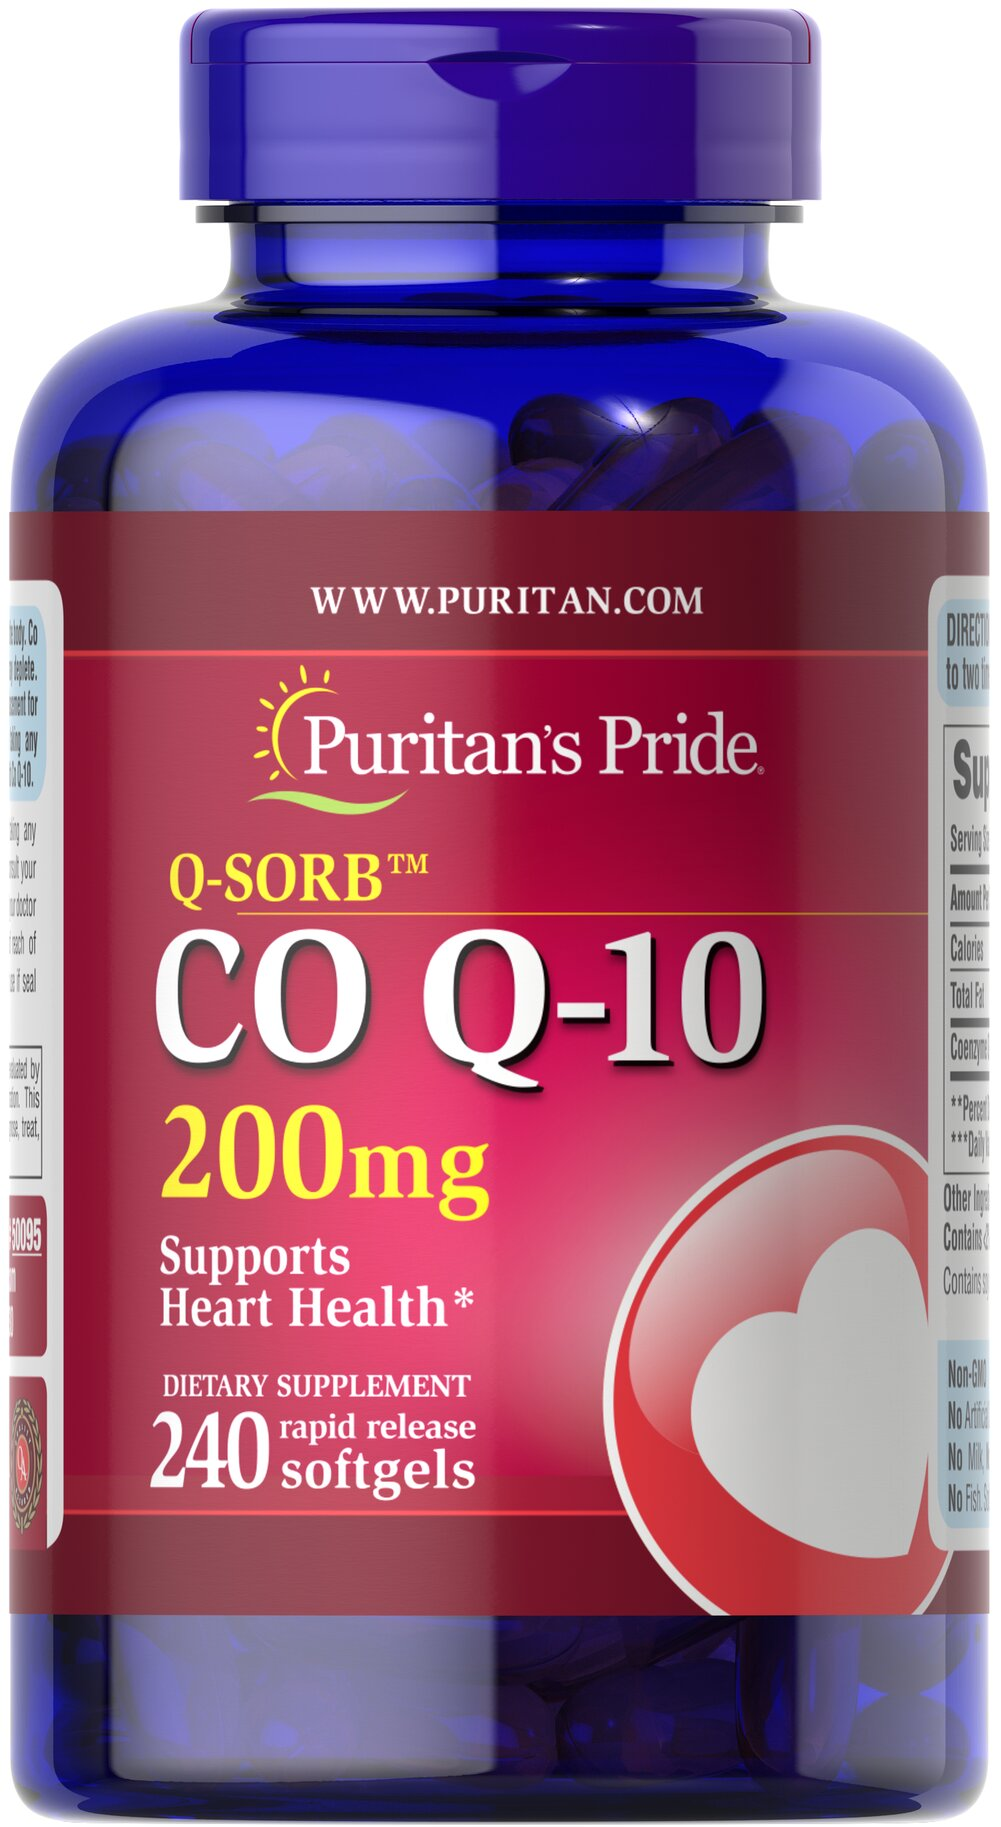 Co Q-10 200 mg <p>Puritan's Pride Q-Sorb™ Co Q-10 (coq10) provides antioxidant support for your heart and ensures potency and purity.**</p> <p>Our Q-Sorb™ Co Q-10 is hermetically sealed in rapid release softgels to provide superior absorption</p> <p>Contributes to your heart and cardiovascular wellness**</p> <p>Helps support blood pressure levels already within a normal range**</p> <p>Promotes energy production within your heart, brain, and m